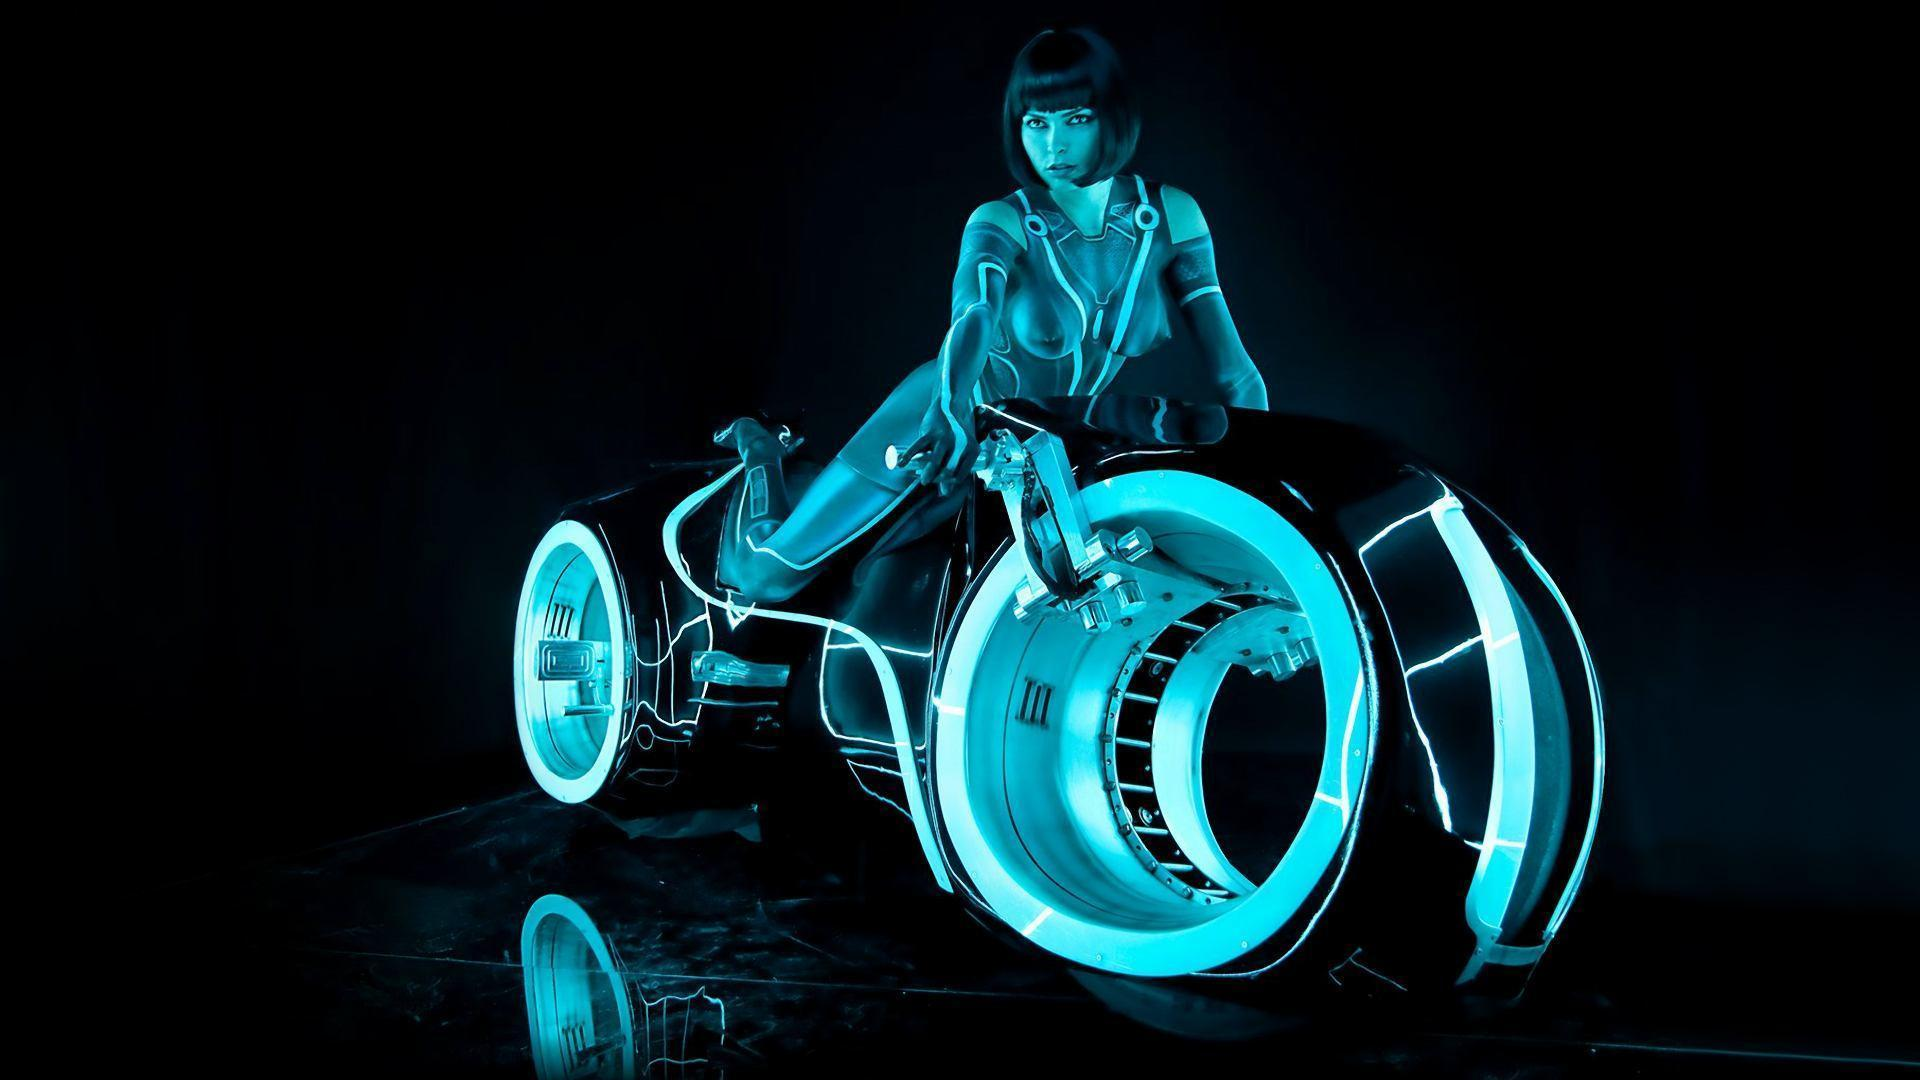 tron wallpaper hd style - photo #18